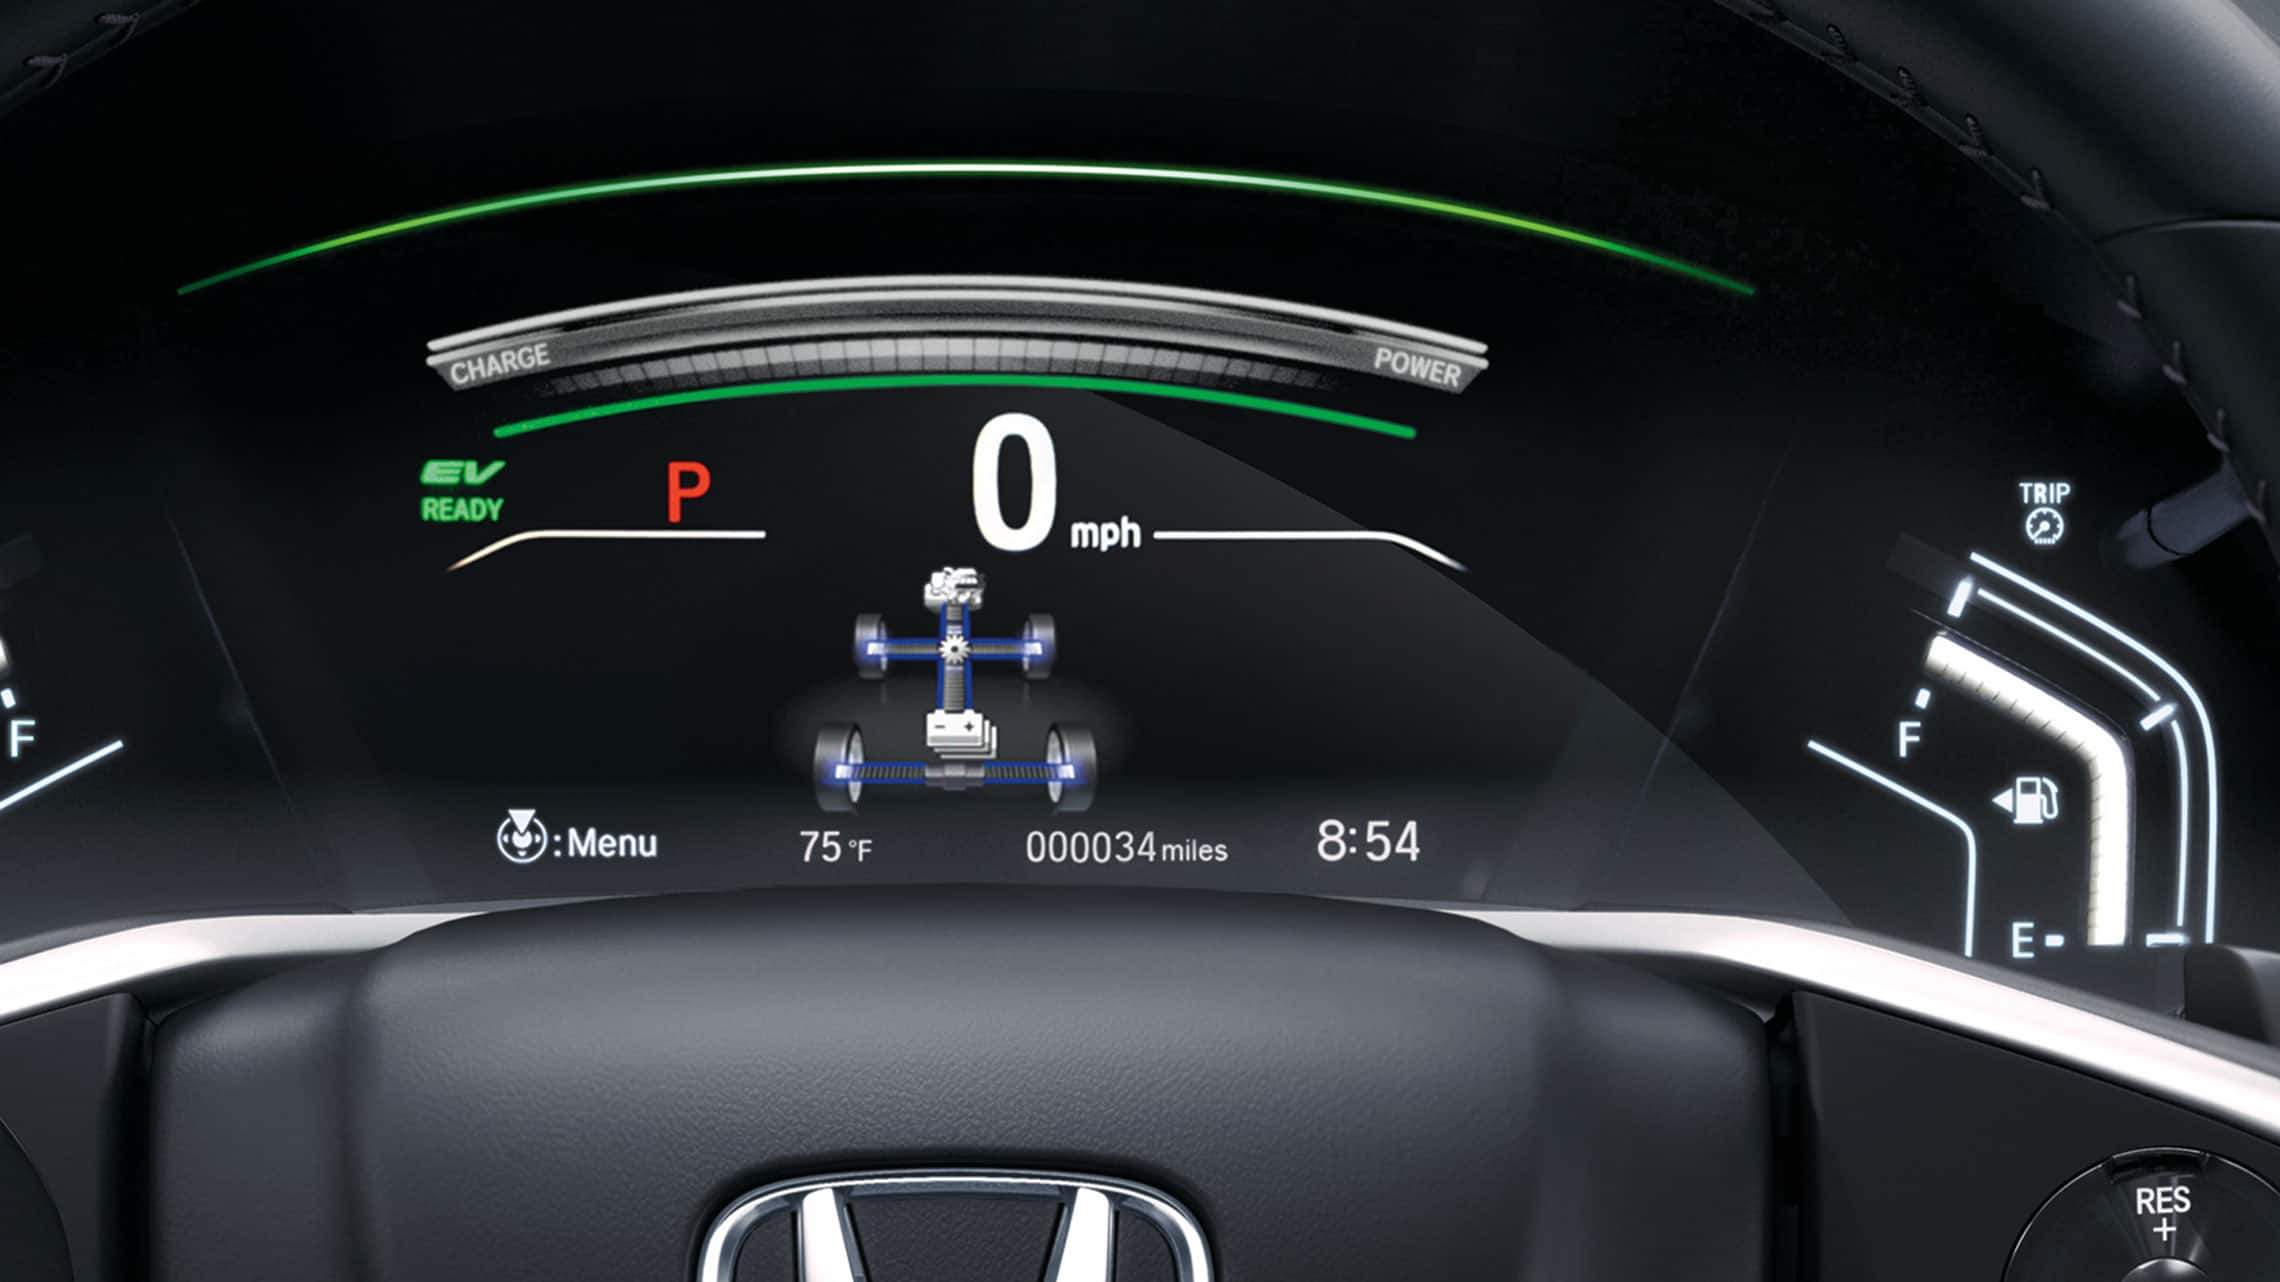 Detail view of the 2020 CR-V Hybrid Driver Information Interface screen with power flow monitor.